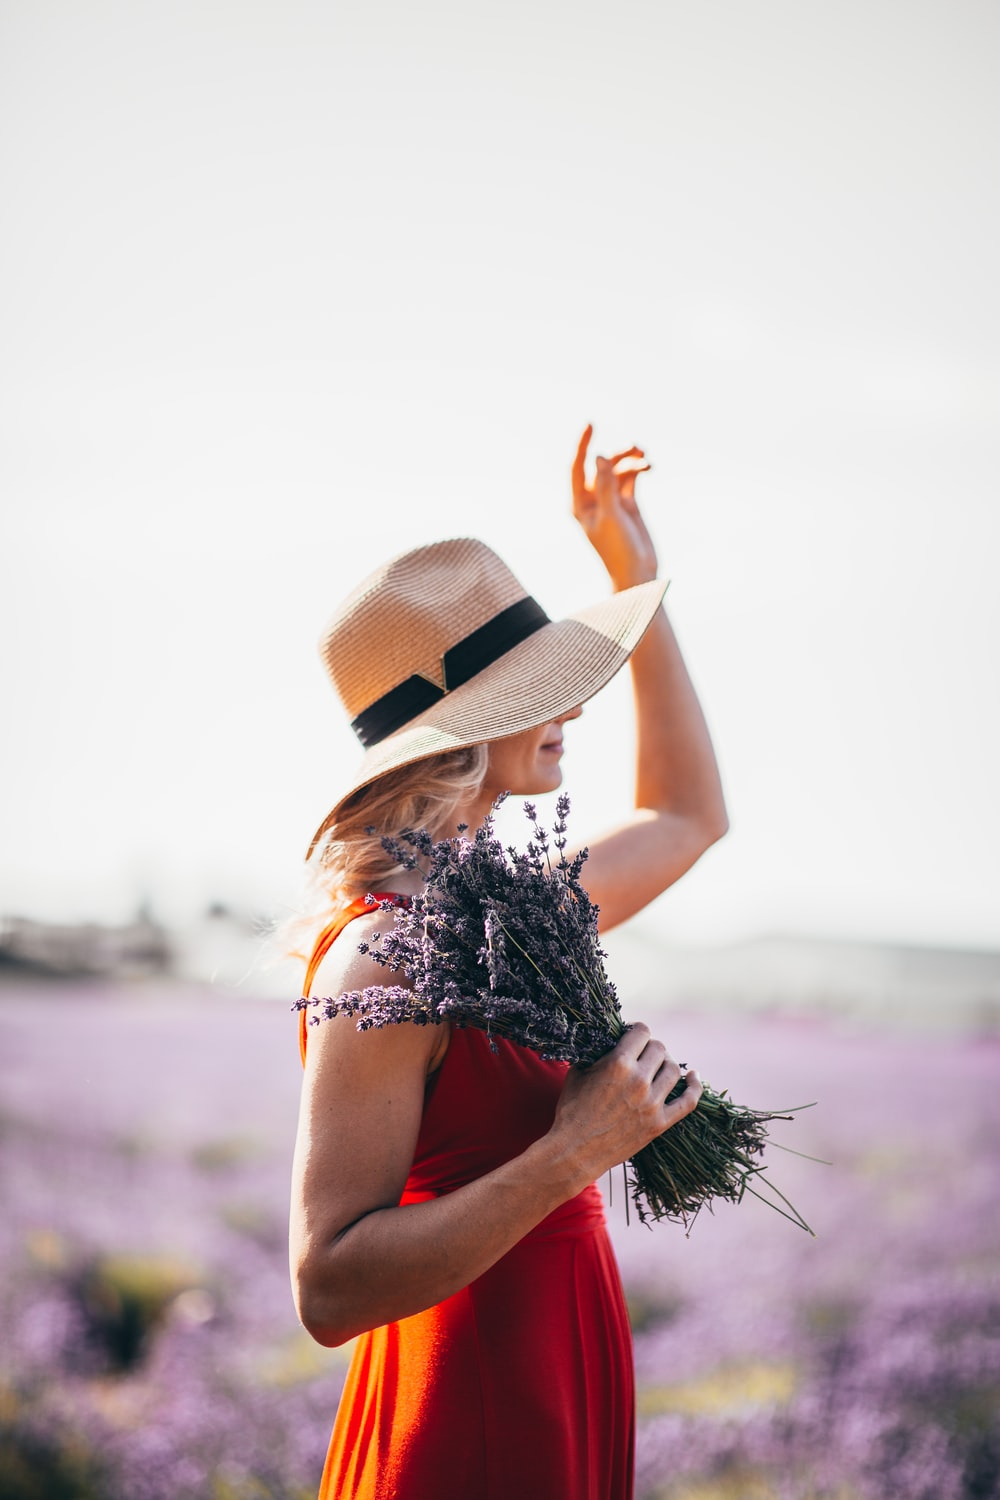 woman wearing red sleeveless dress holding lavender flowers